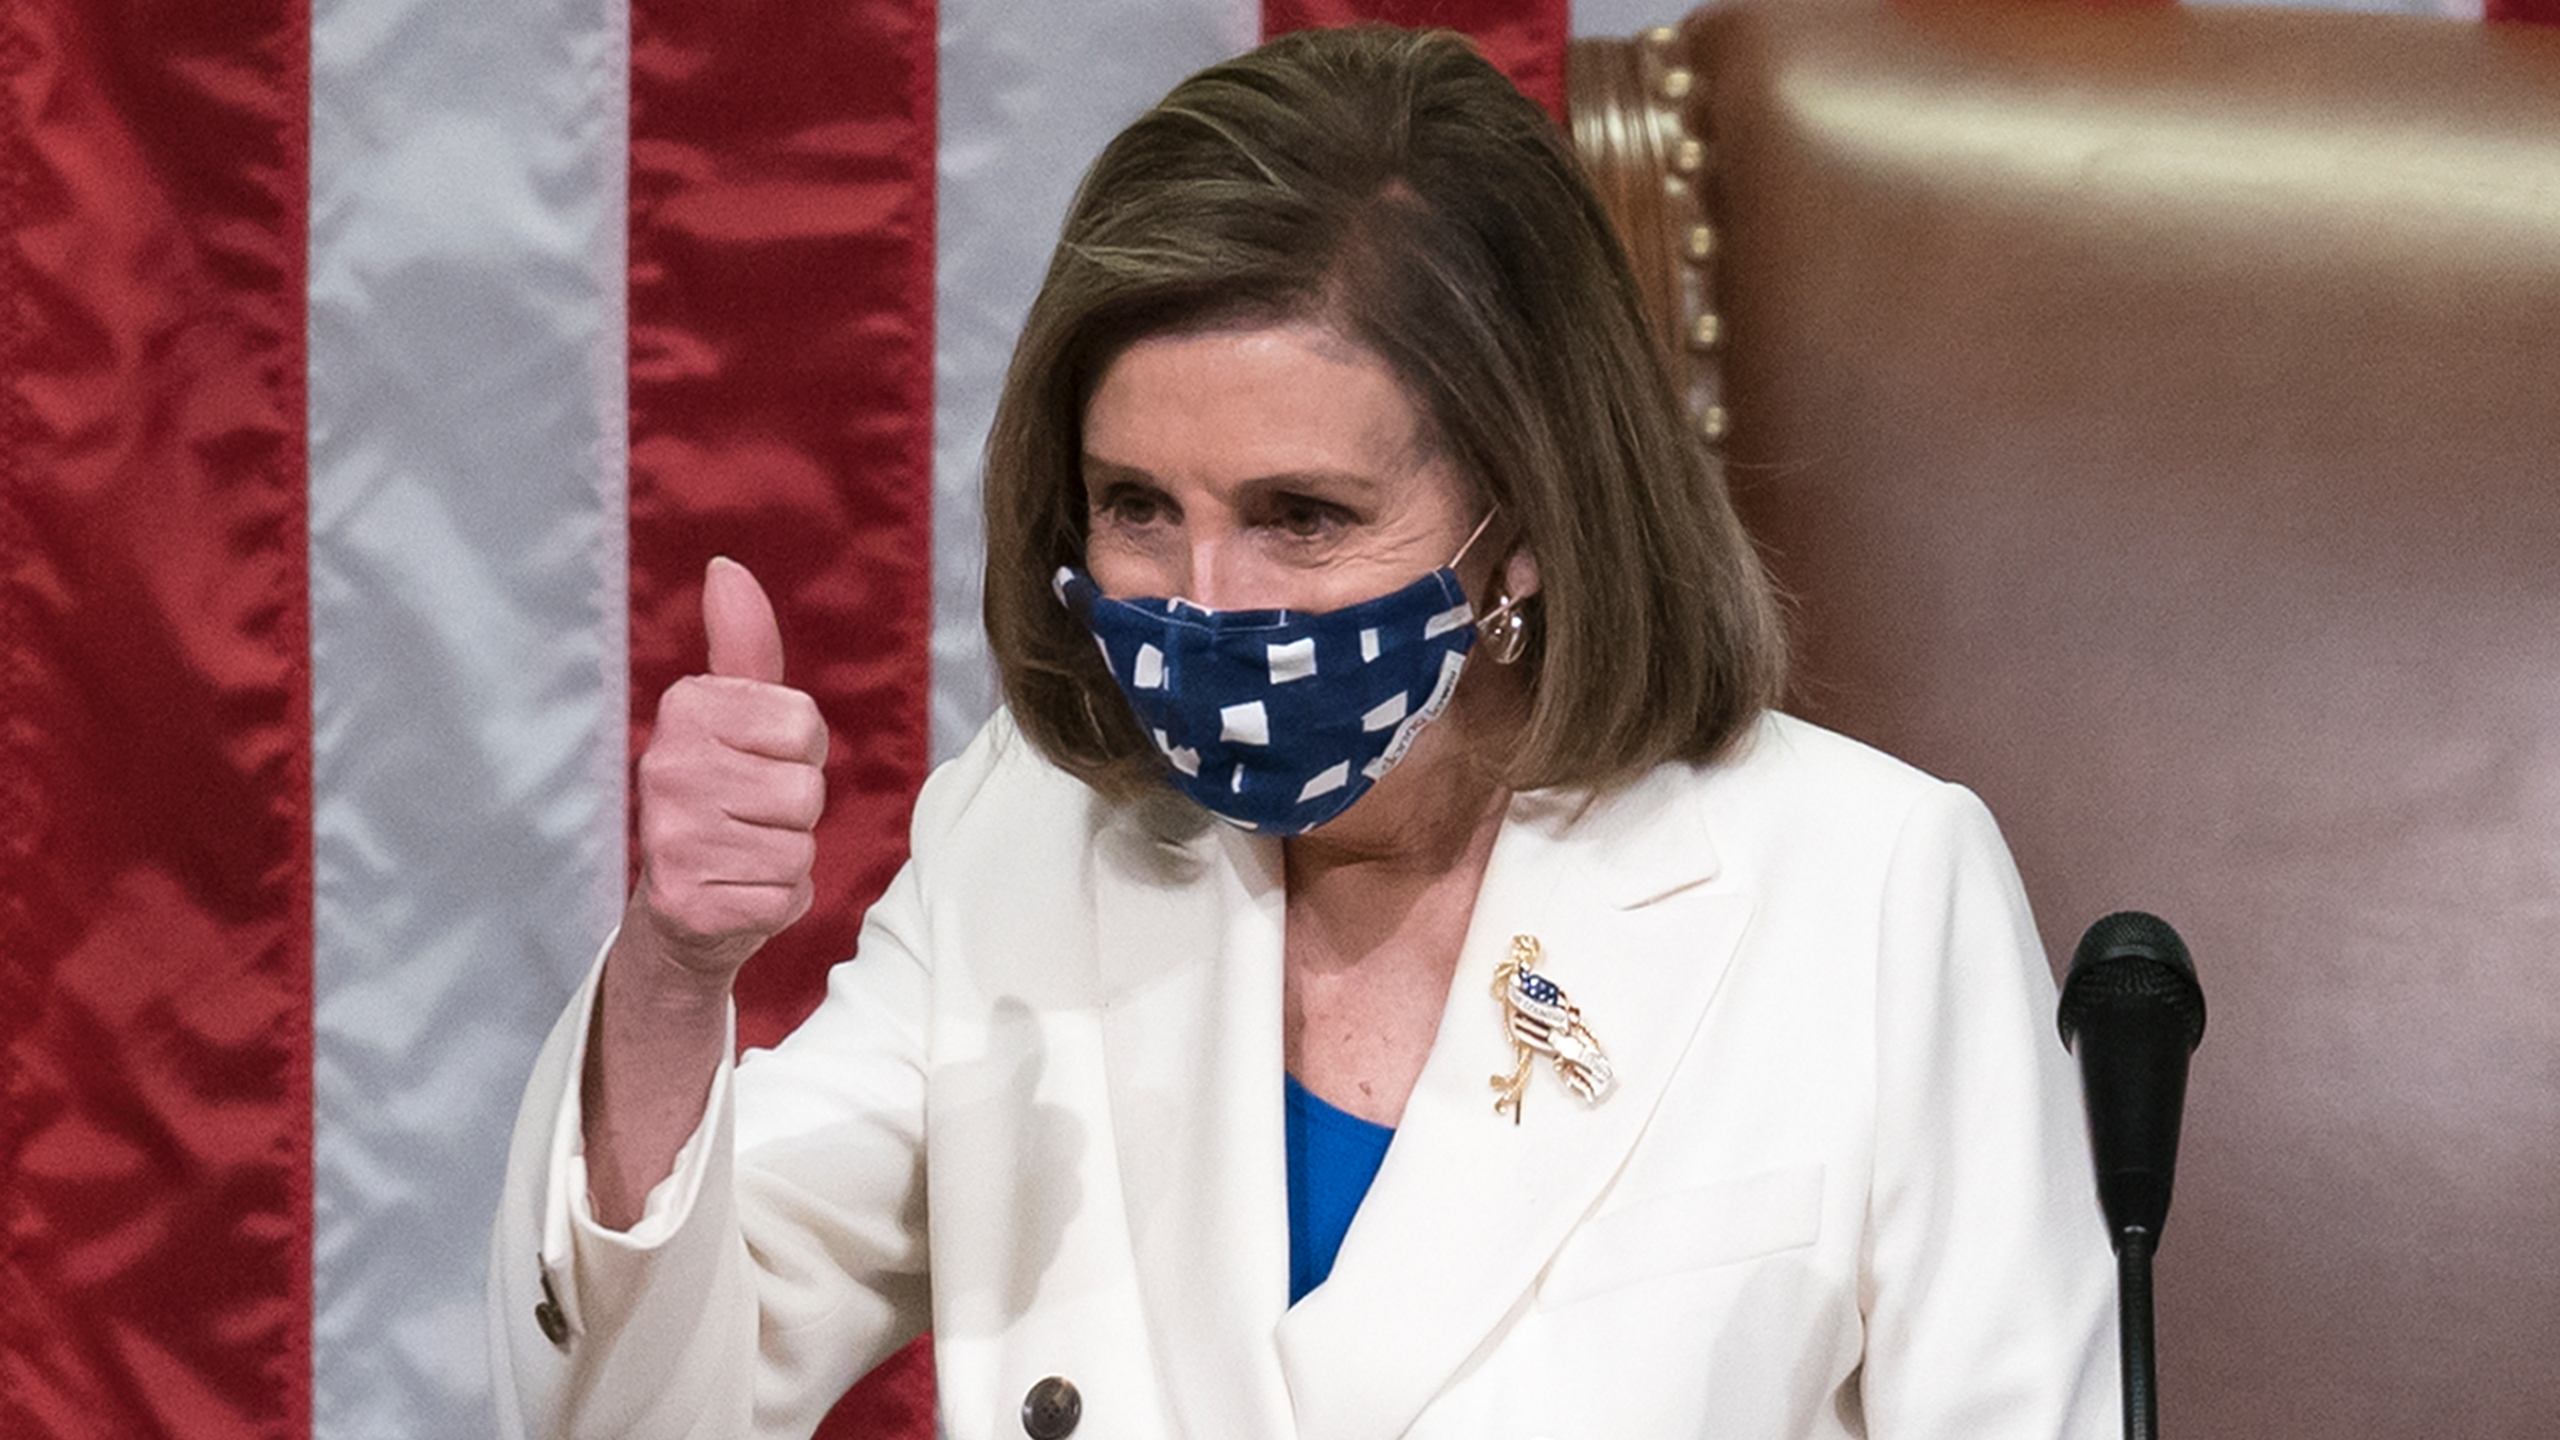 Speaker of the House Nancy Pelosi, D-Calif., gestures after the $1.9 trillion COVID-19 relief bill was passed at the Capitol in Washington on March 10, 2021. (J. Scott Applewhite / Associated Press)